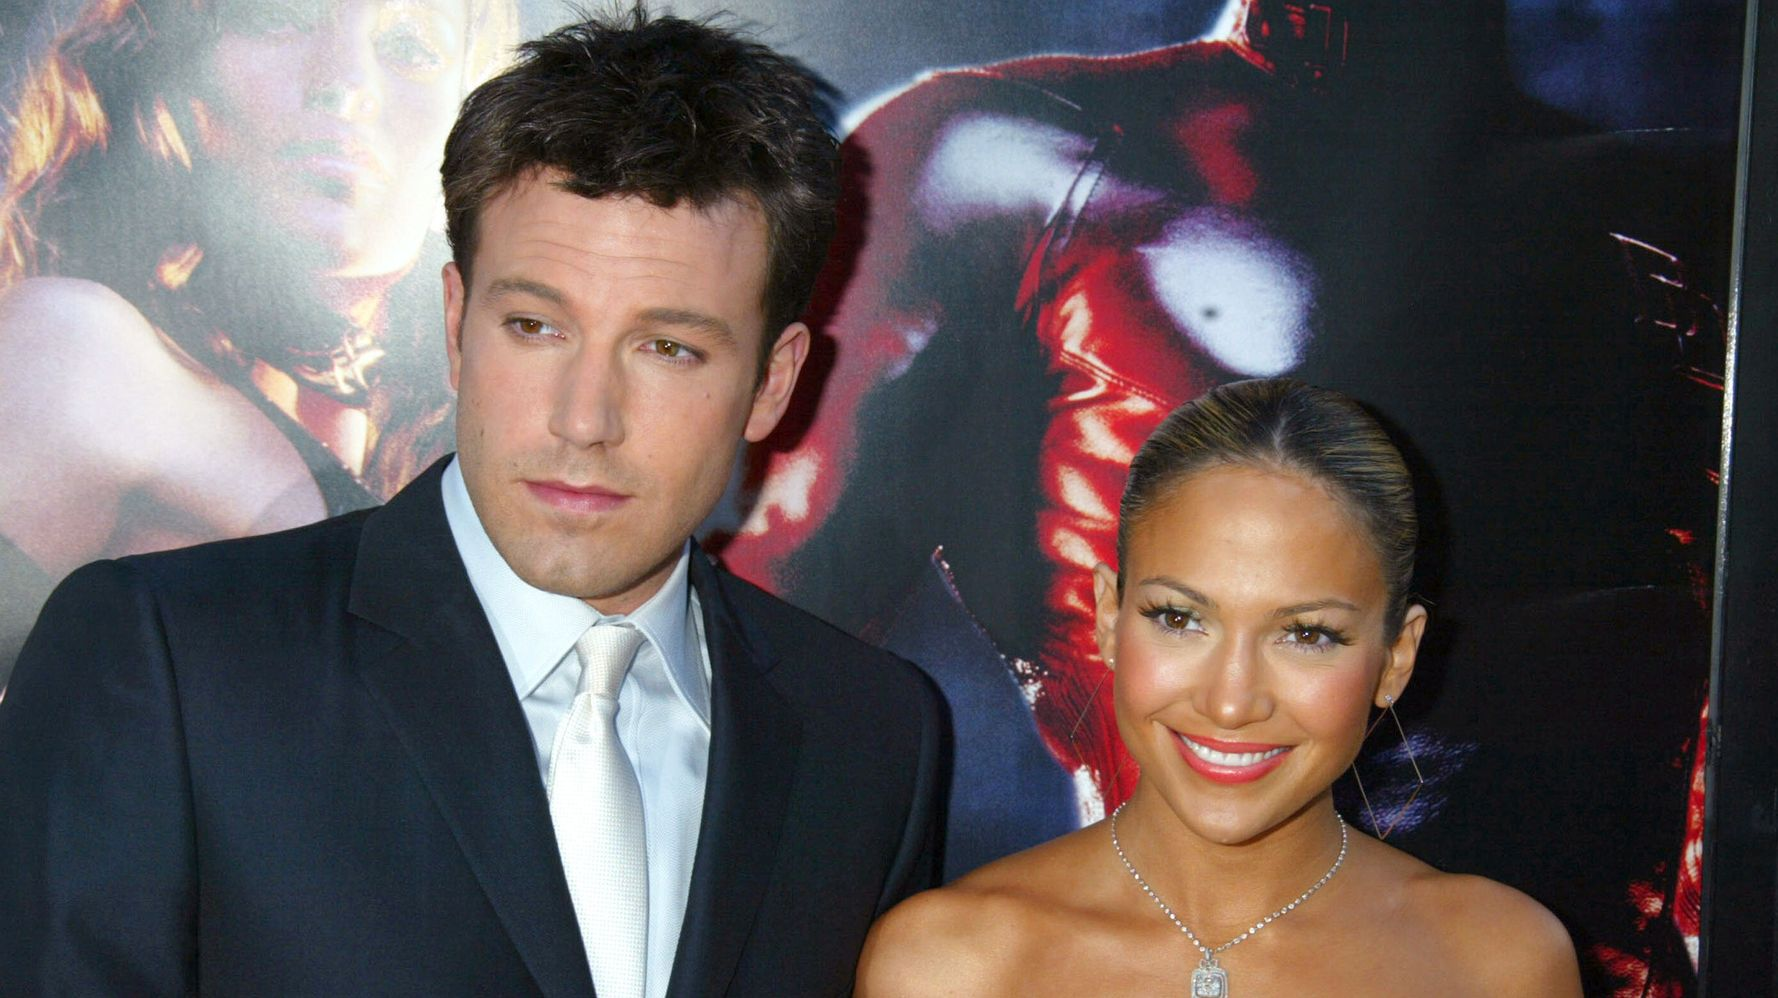 Ben Affleck Says Ex J.Lo Looks 'The Same As You Did In 2003' In Flirty Interview